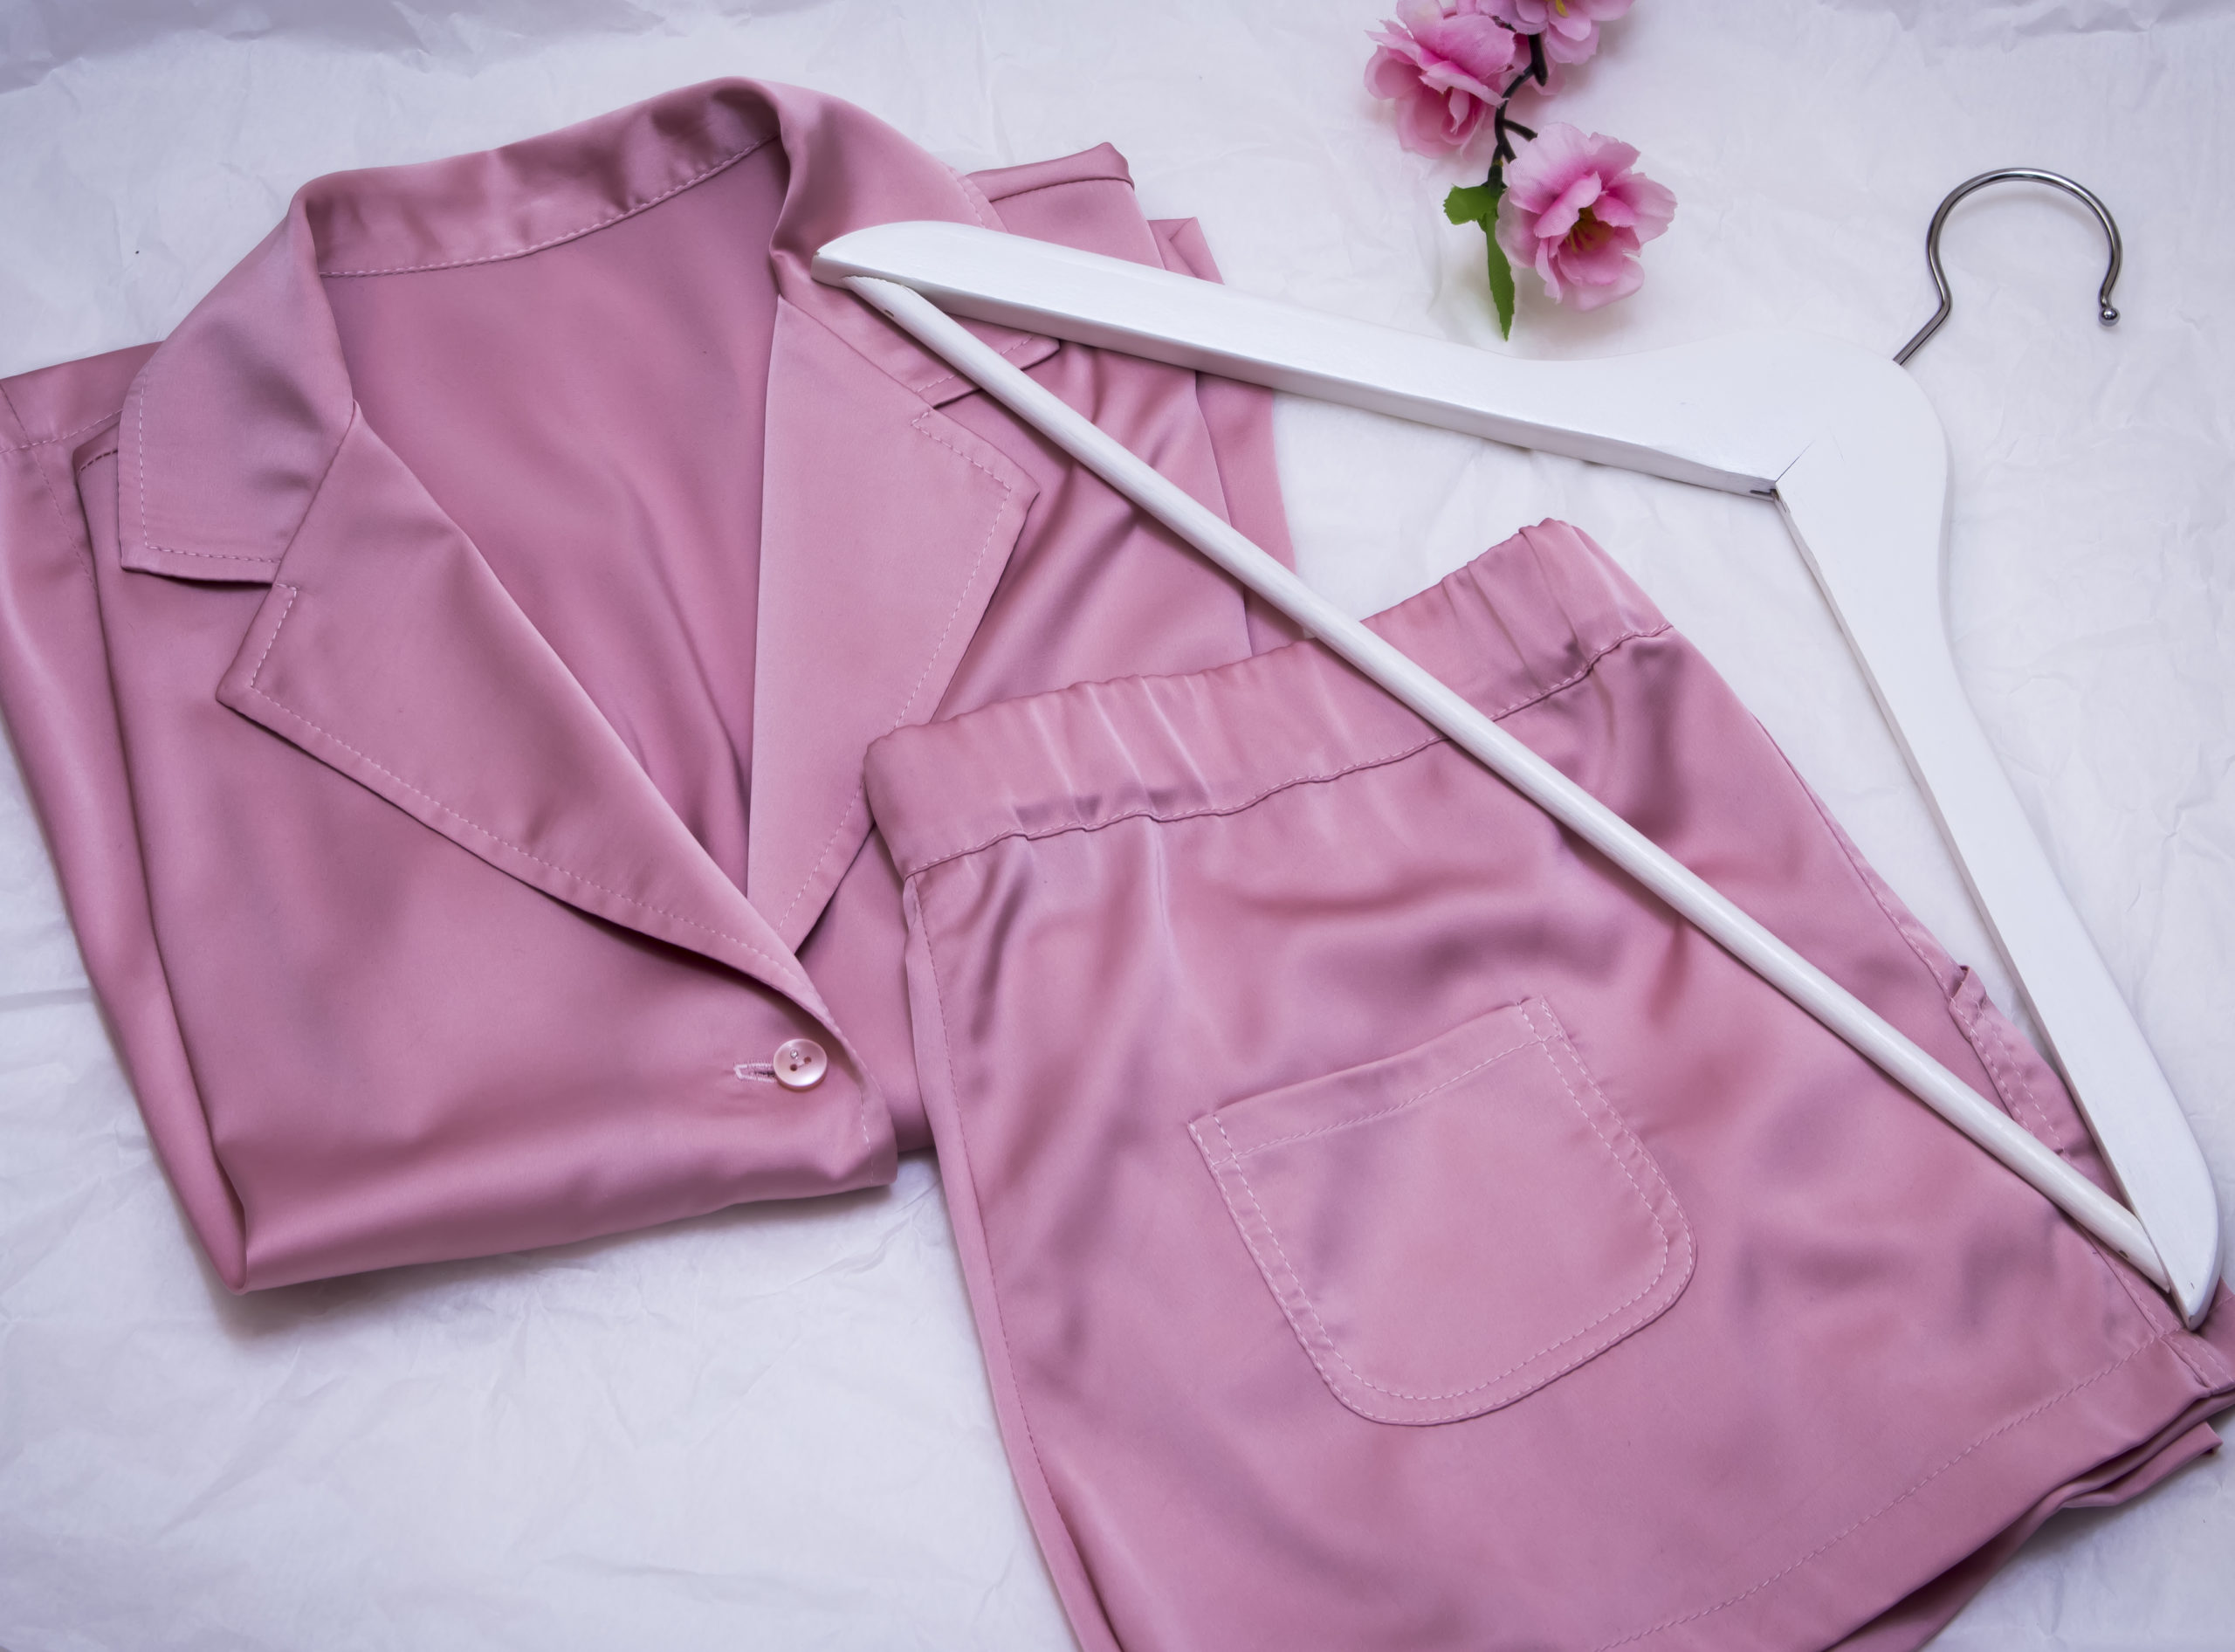 A set of pink silk pajamas laid out on a bed next to a clothing hanger and a flower